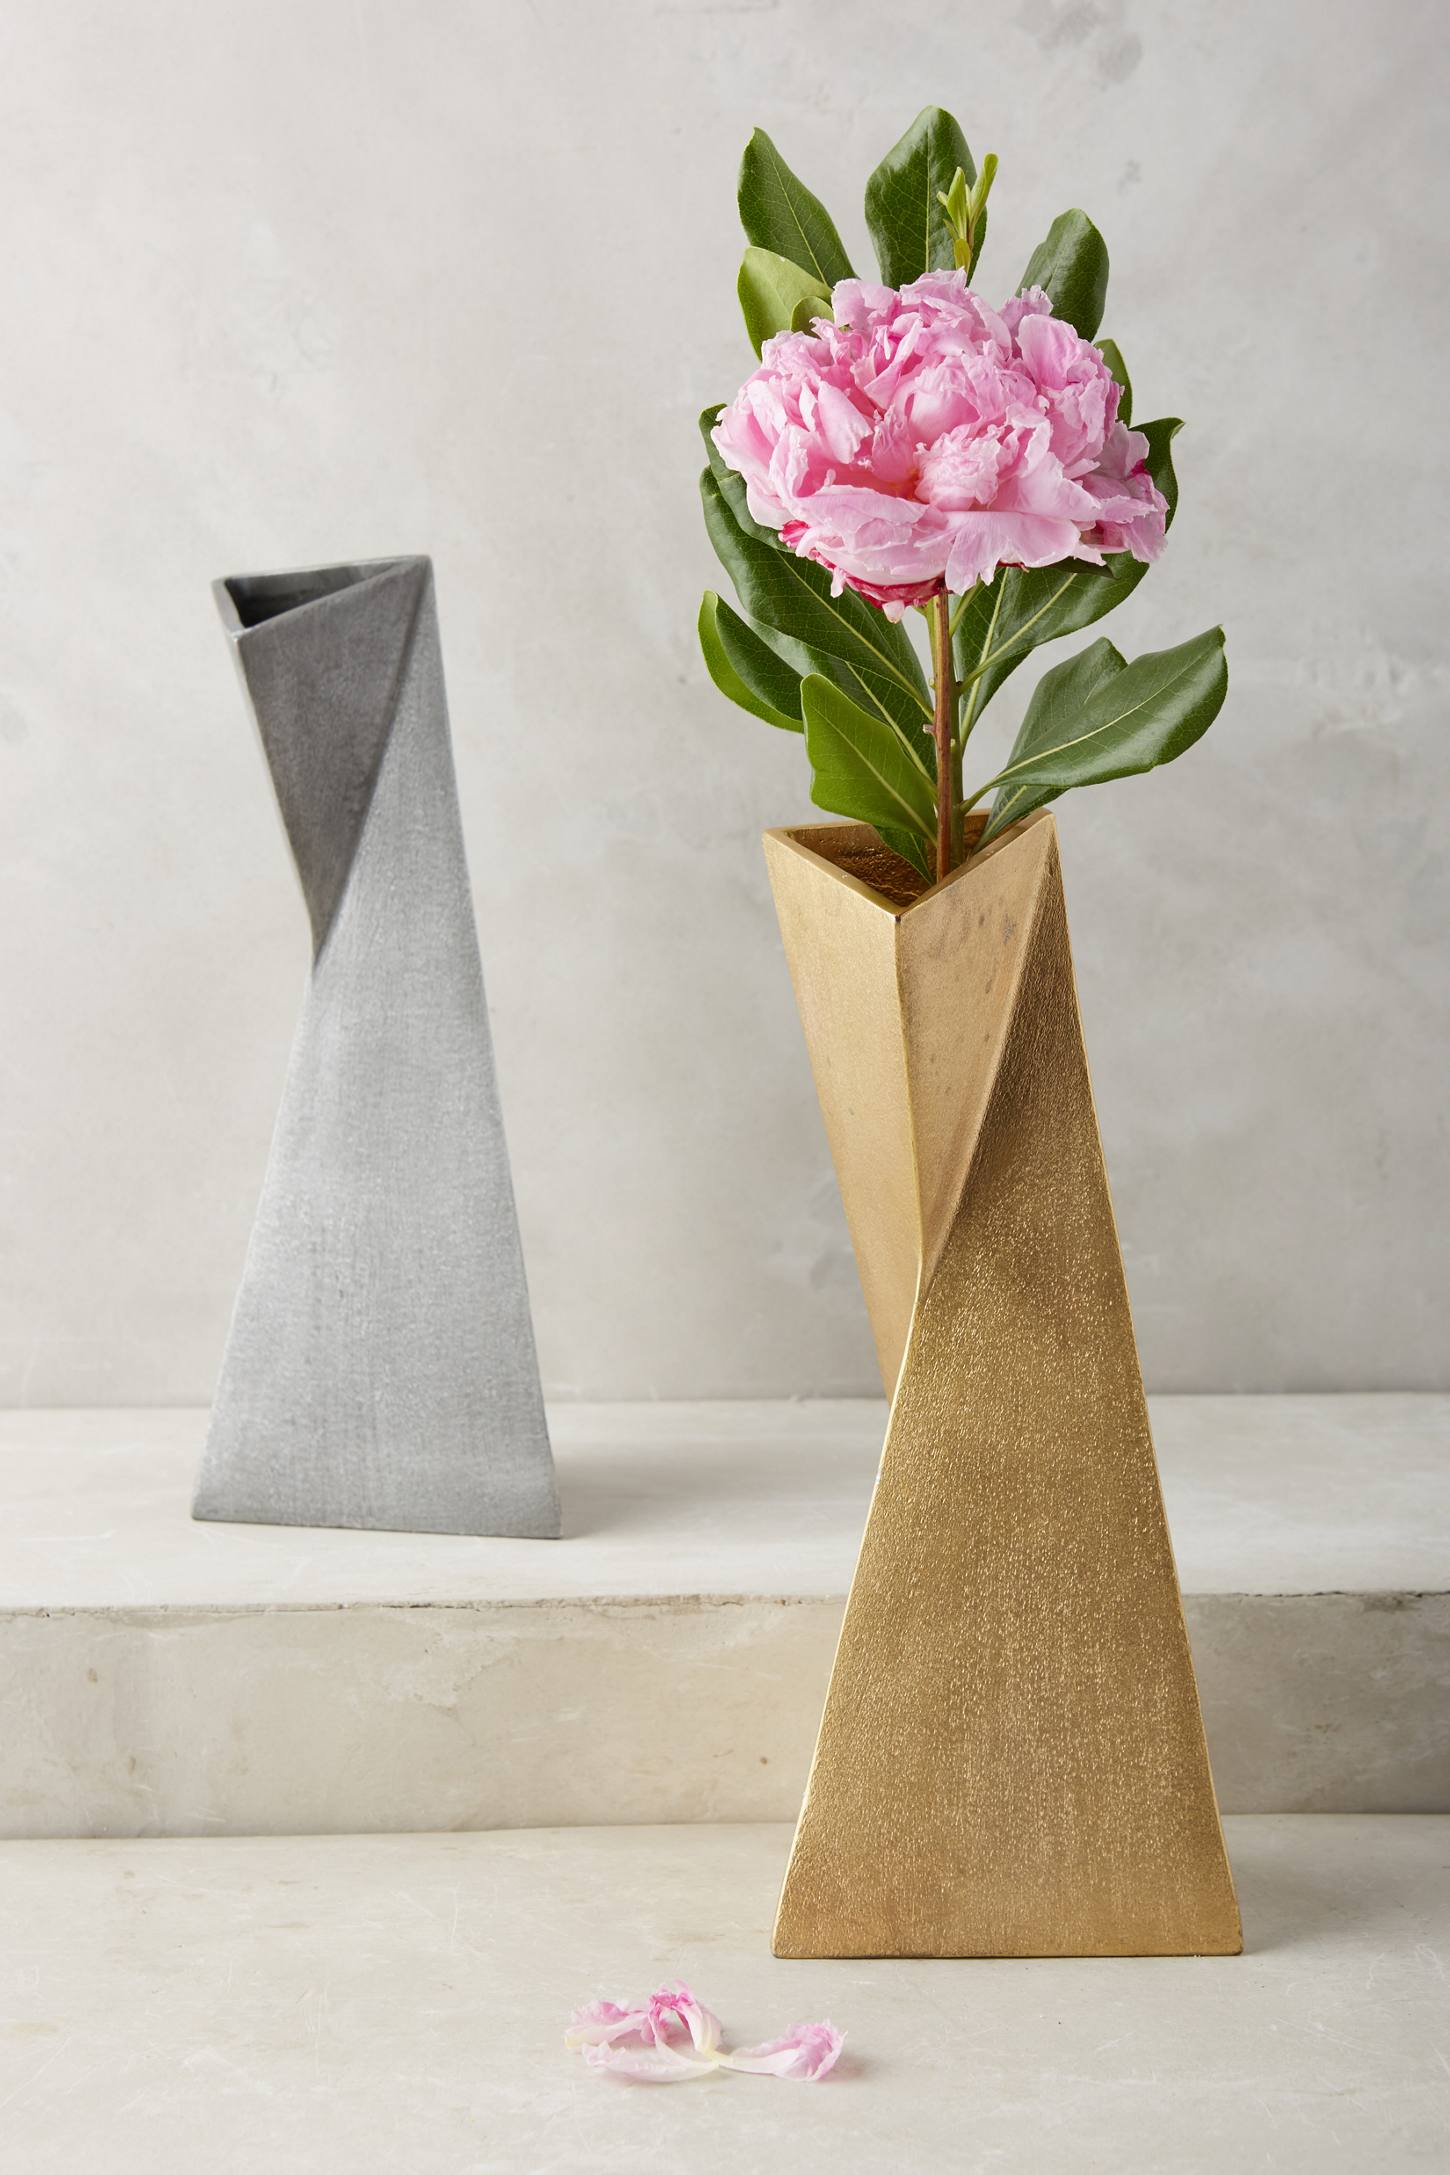 Sculptural vases from Anthropologie